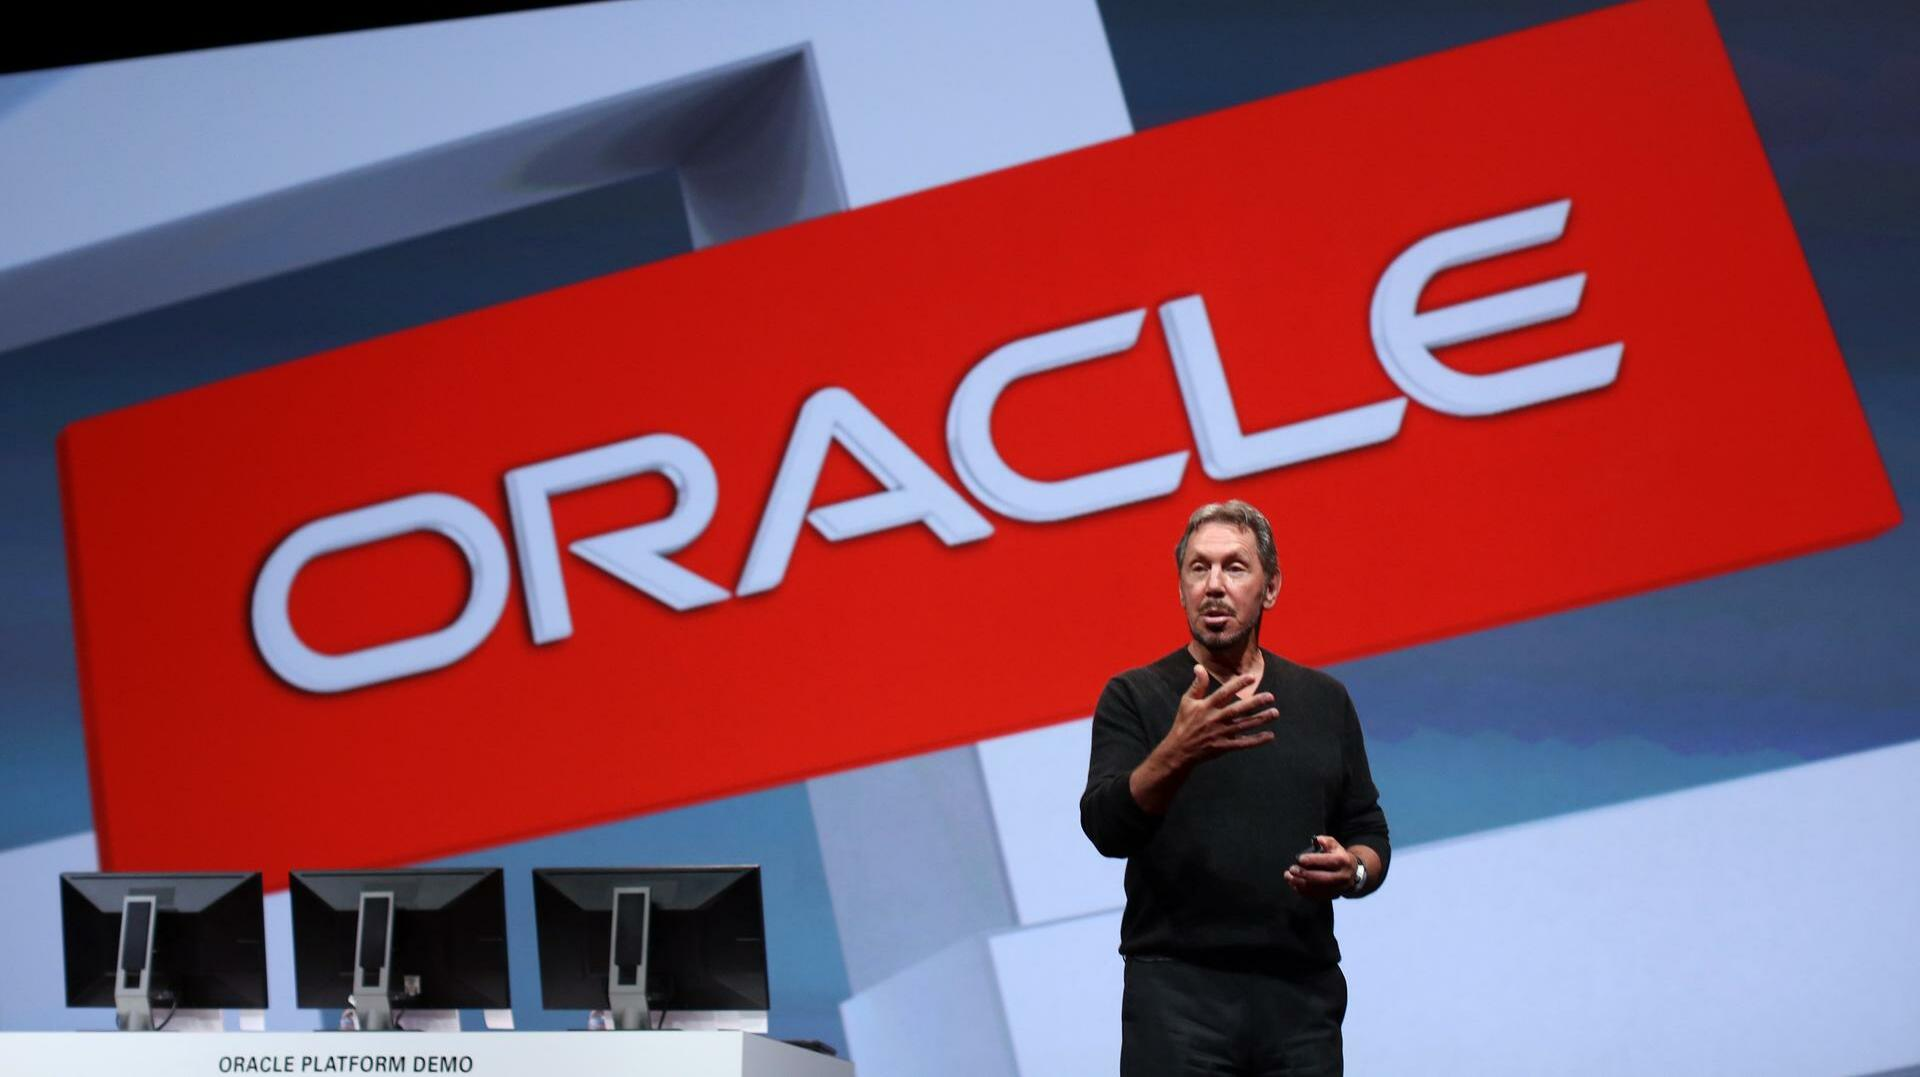 Larry Ellison bei einer Präsentation des Oracle-Konzerns Quelle: REUTERS